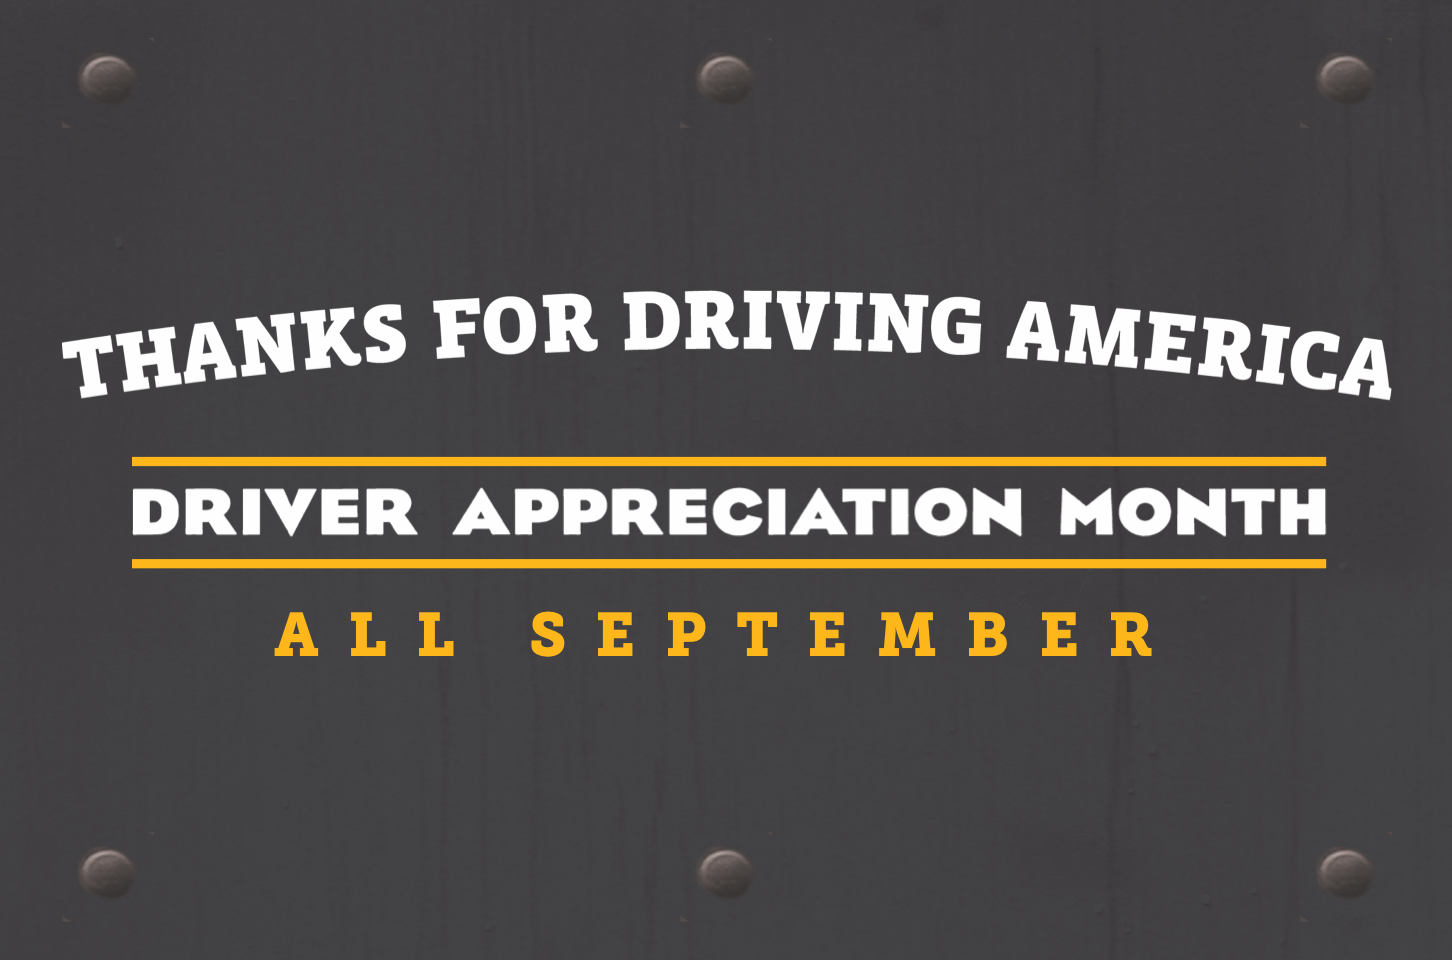 Professional drivers keep North America moving and Pilot Company is giving them a special thanks all September for Driver Appreciation month.